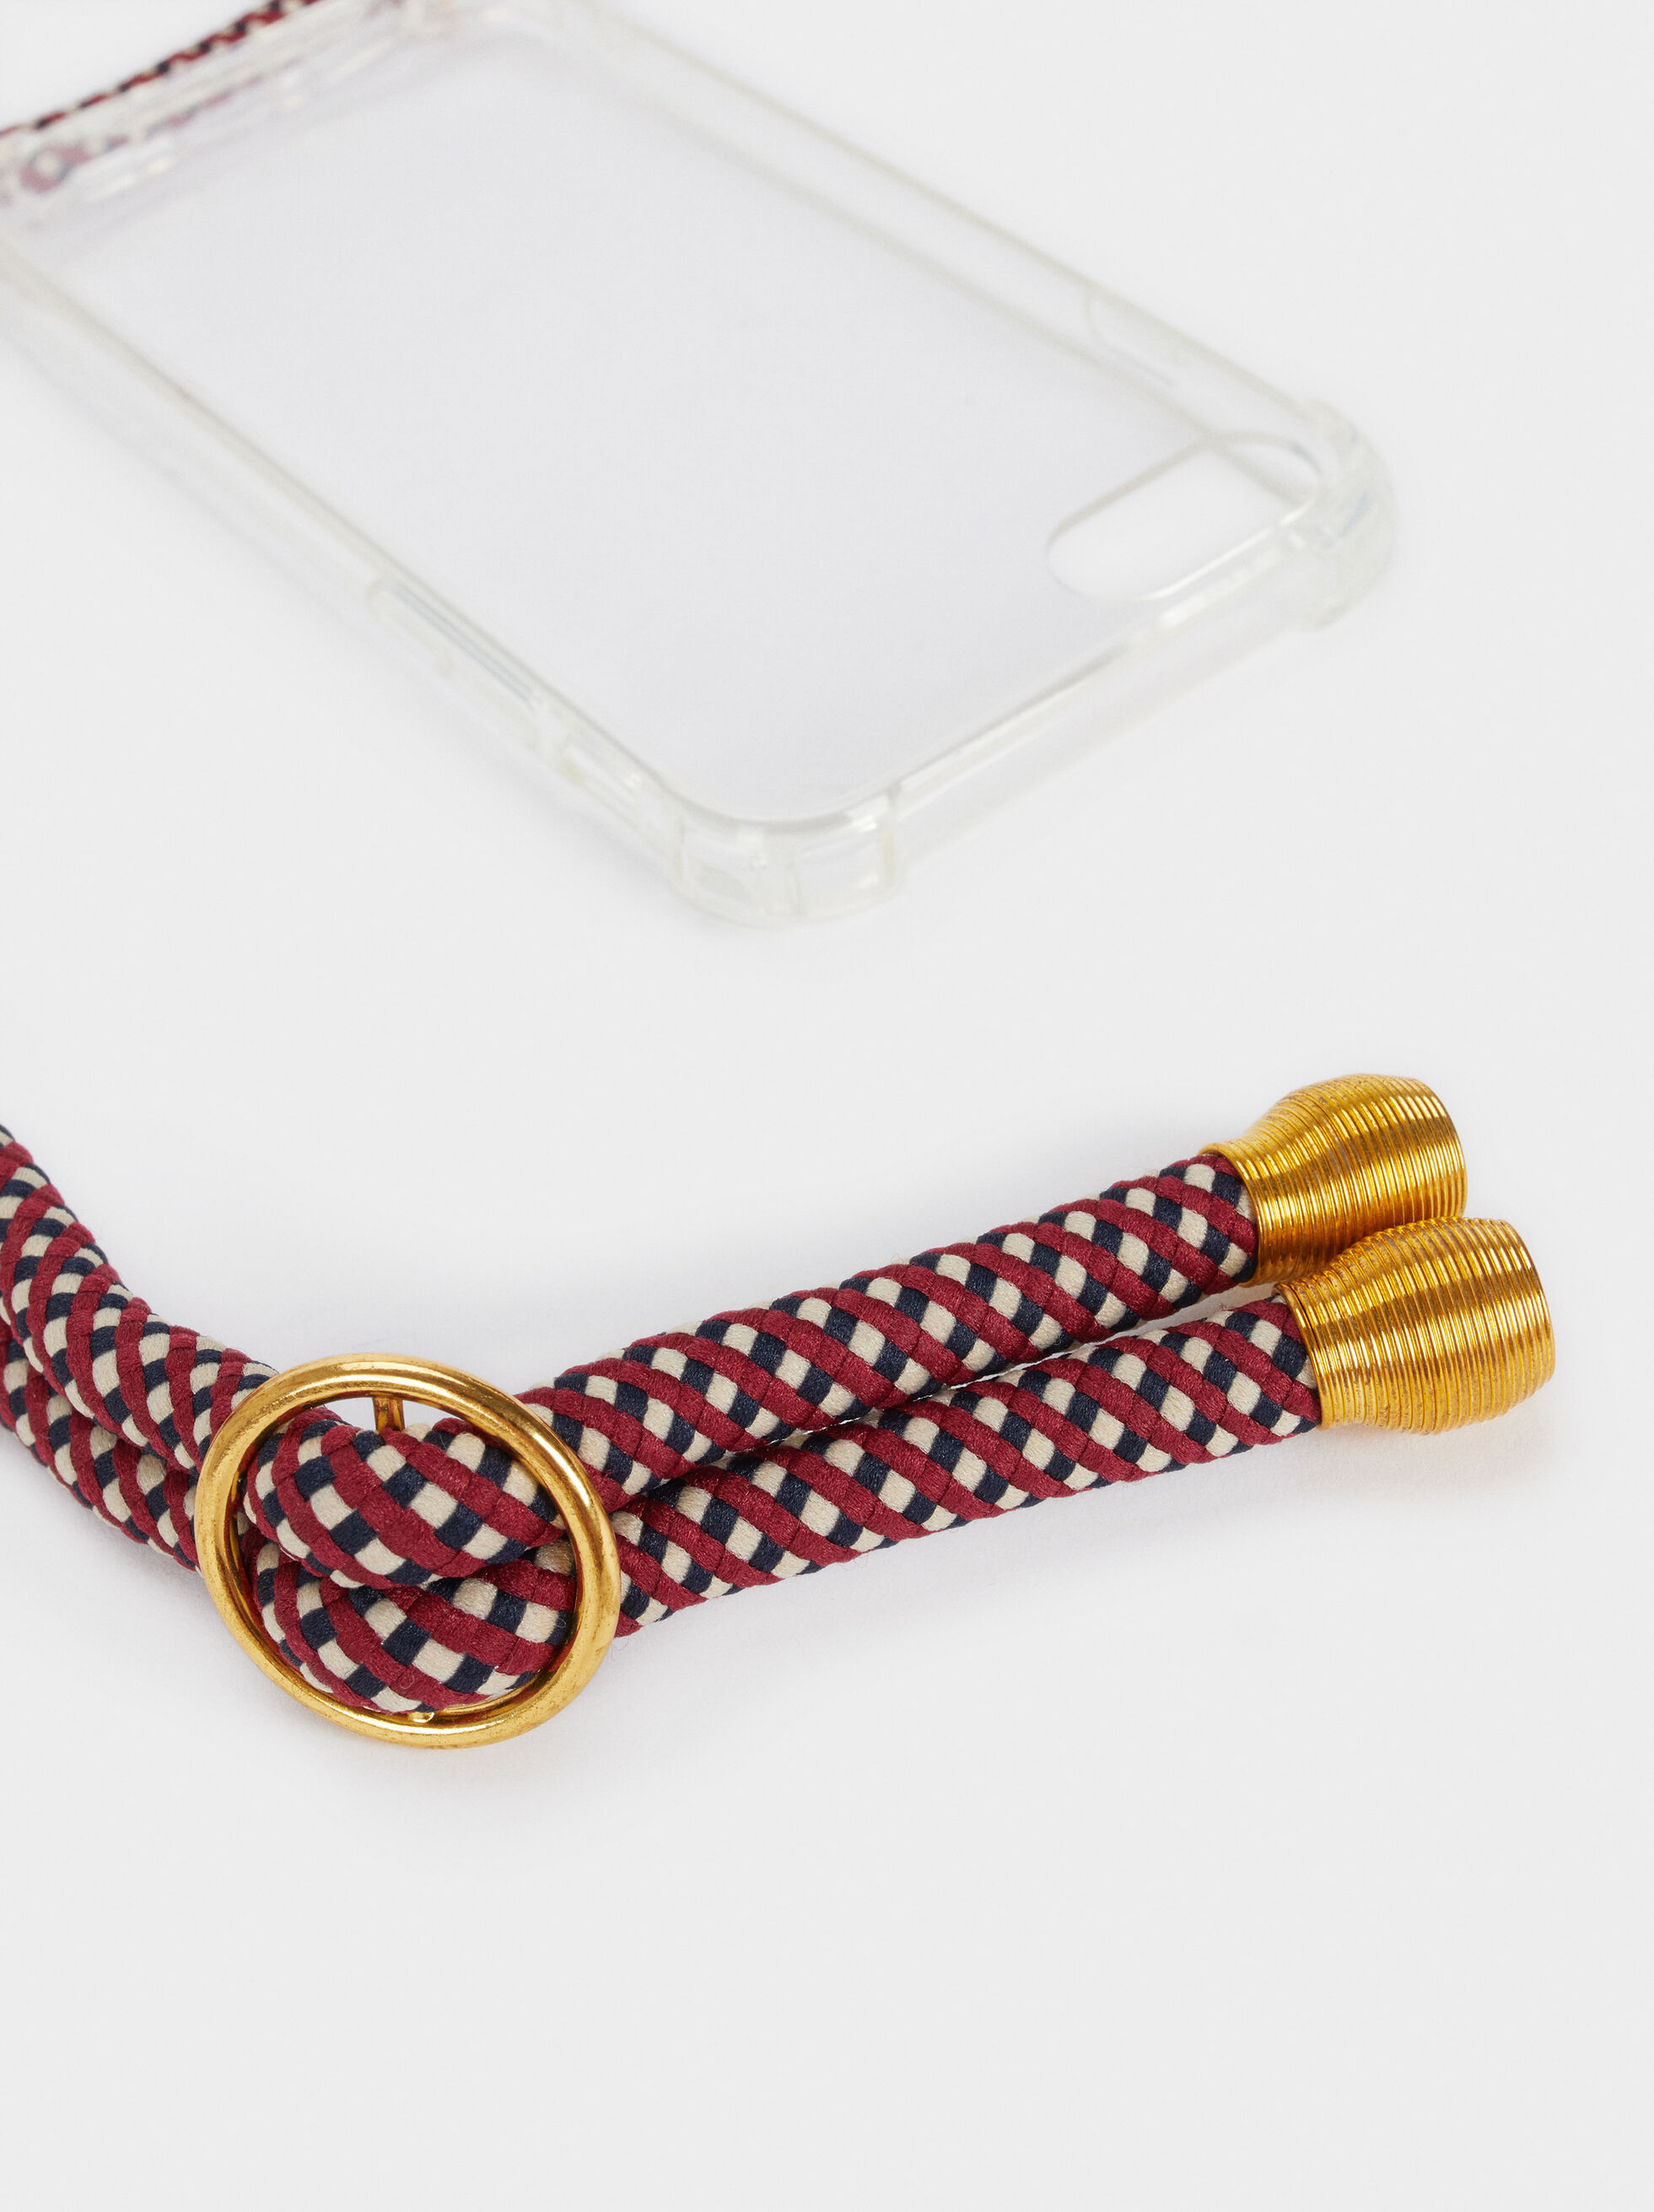 Iphone 6/7/8 Case With Cord, Multicolor, hi-res